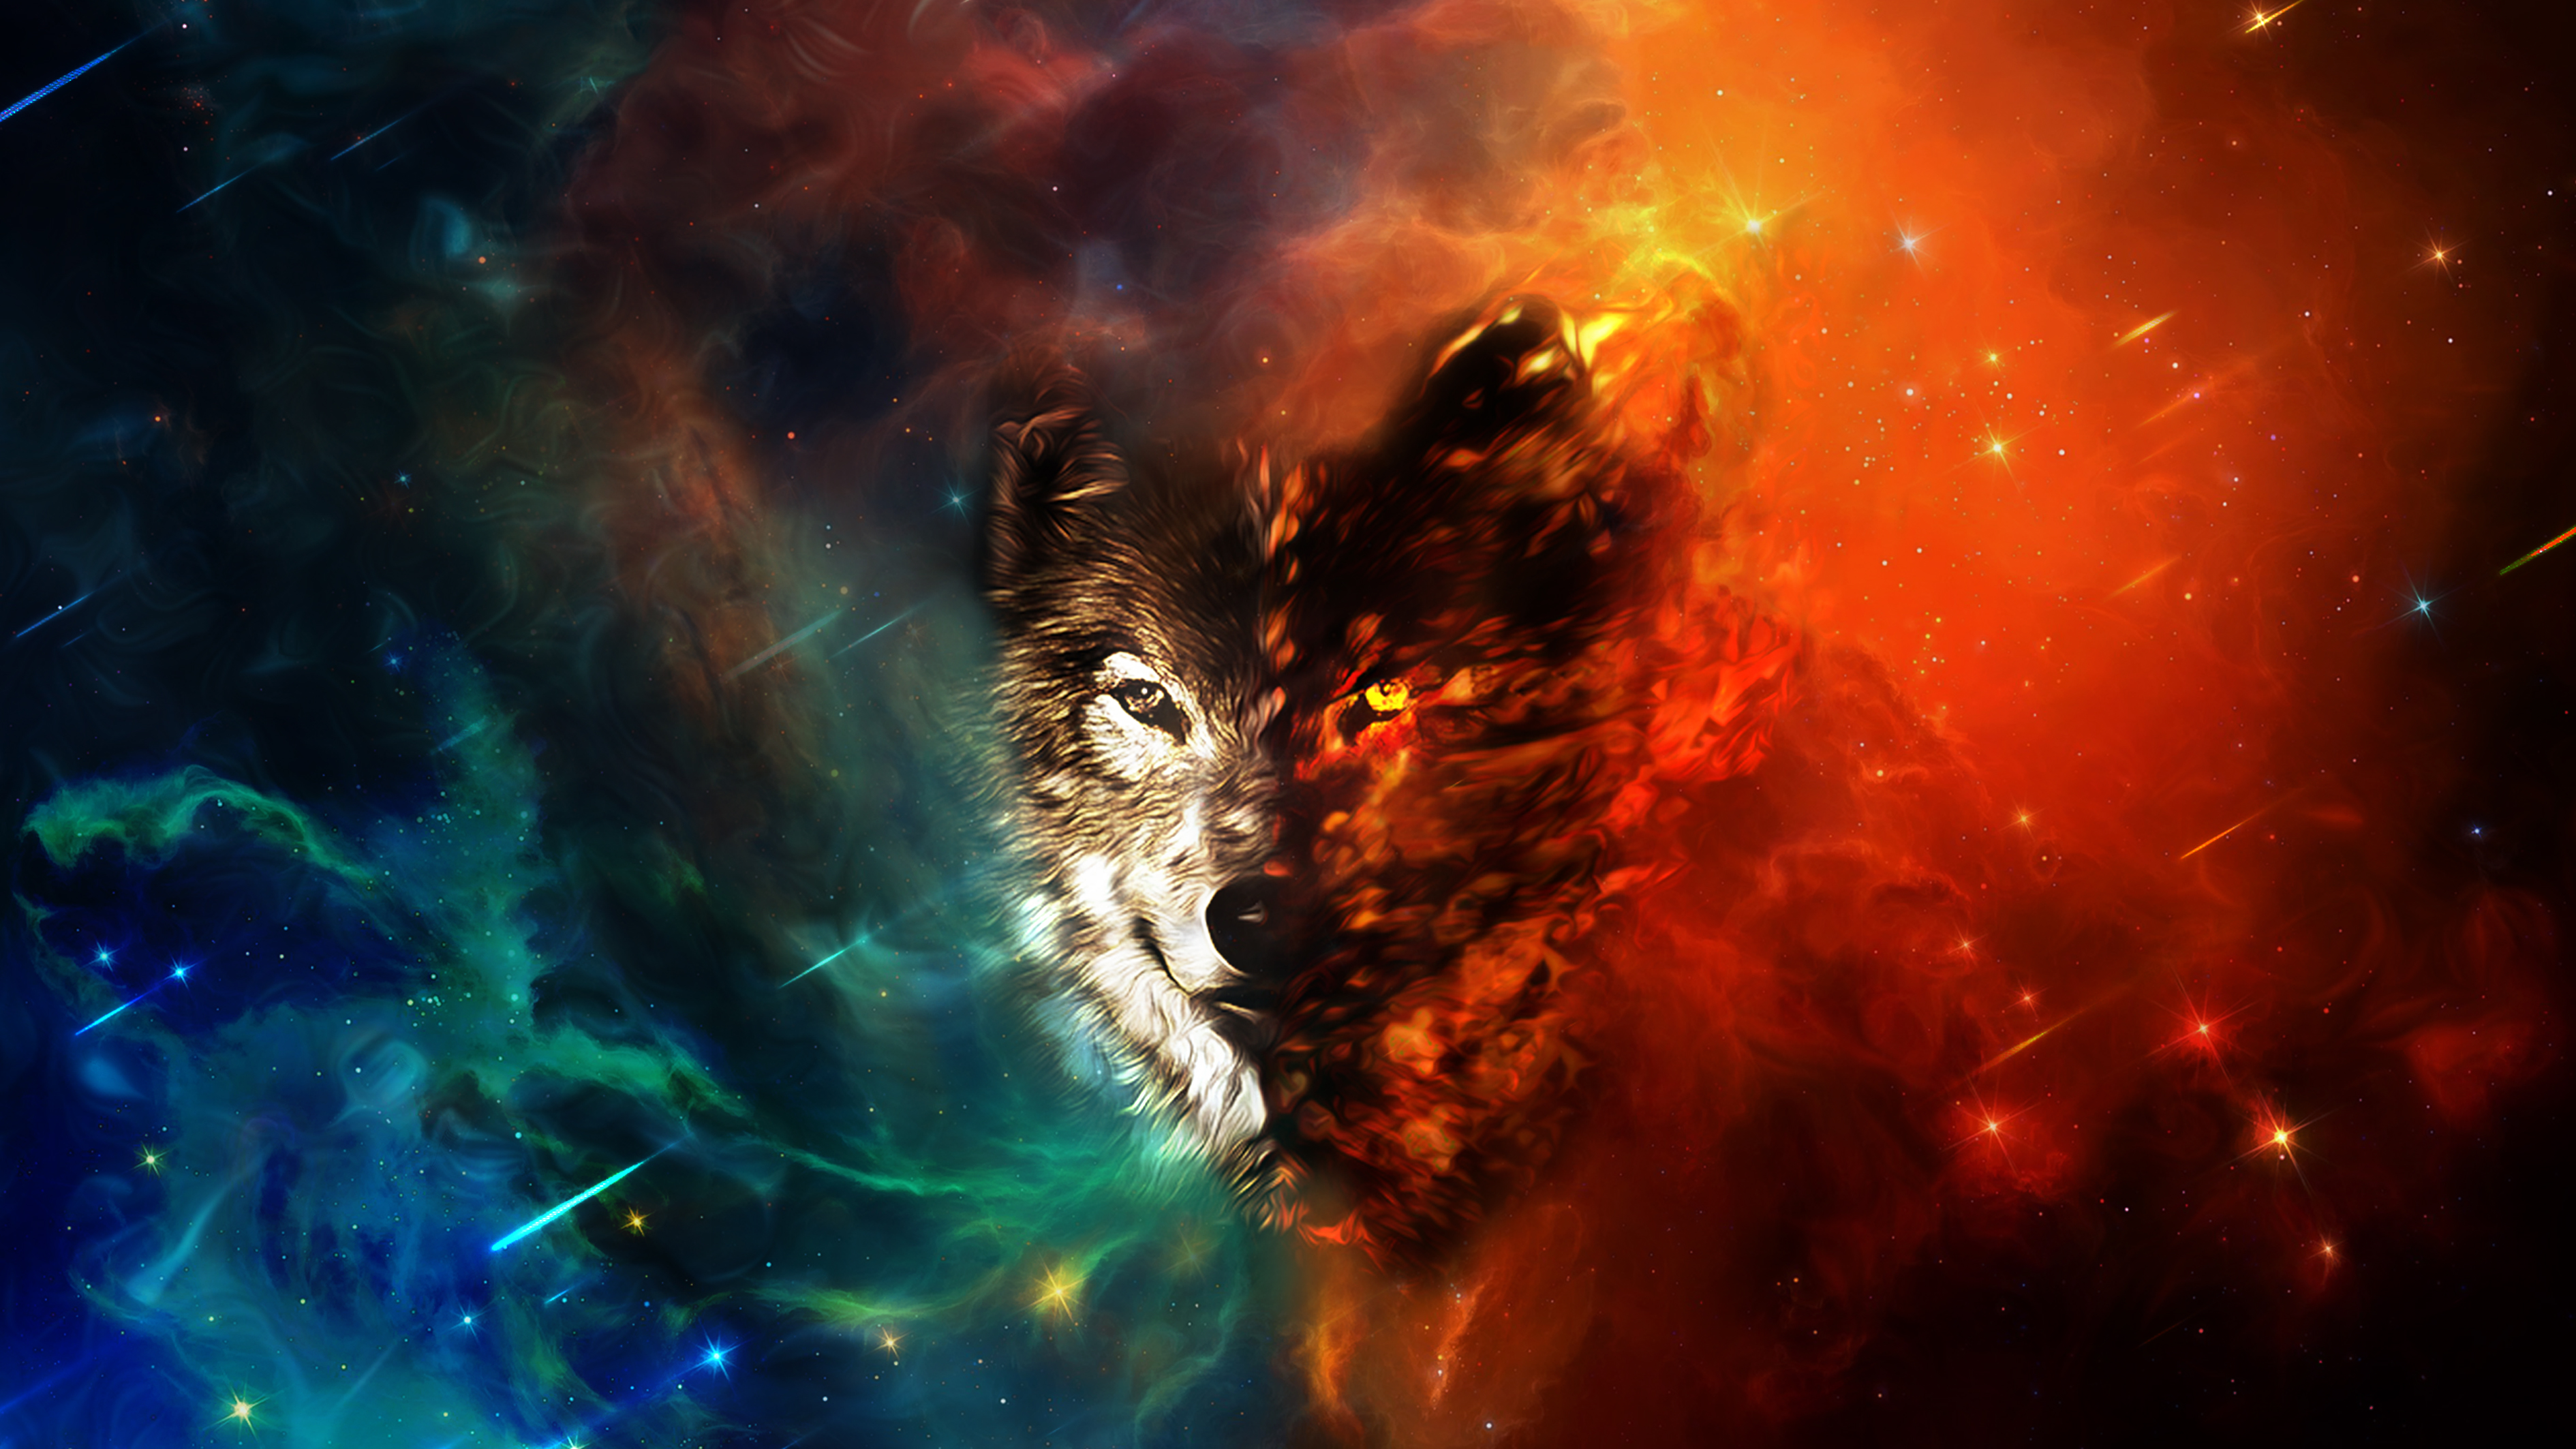 Wolf Space Wallpaper HD by Oblivigate 3780x2126